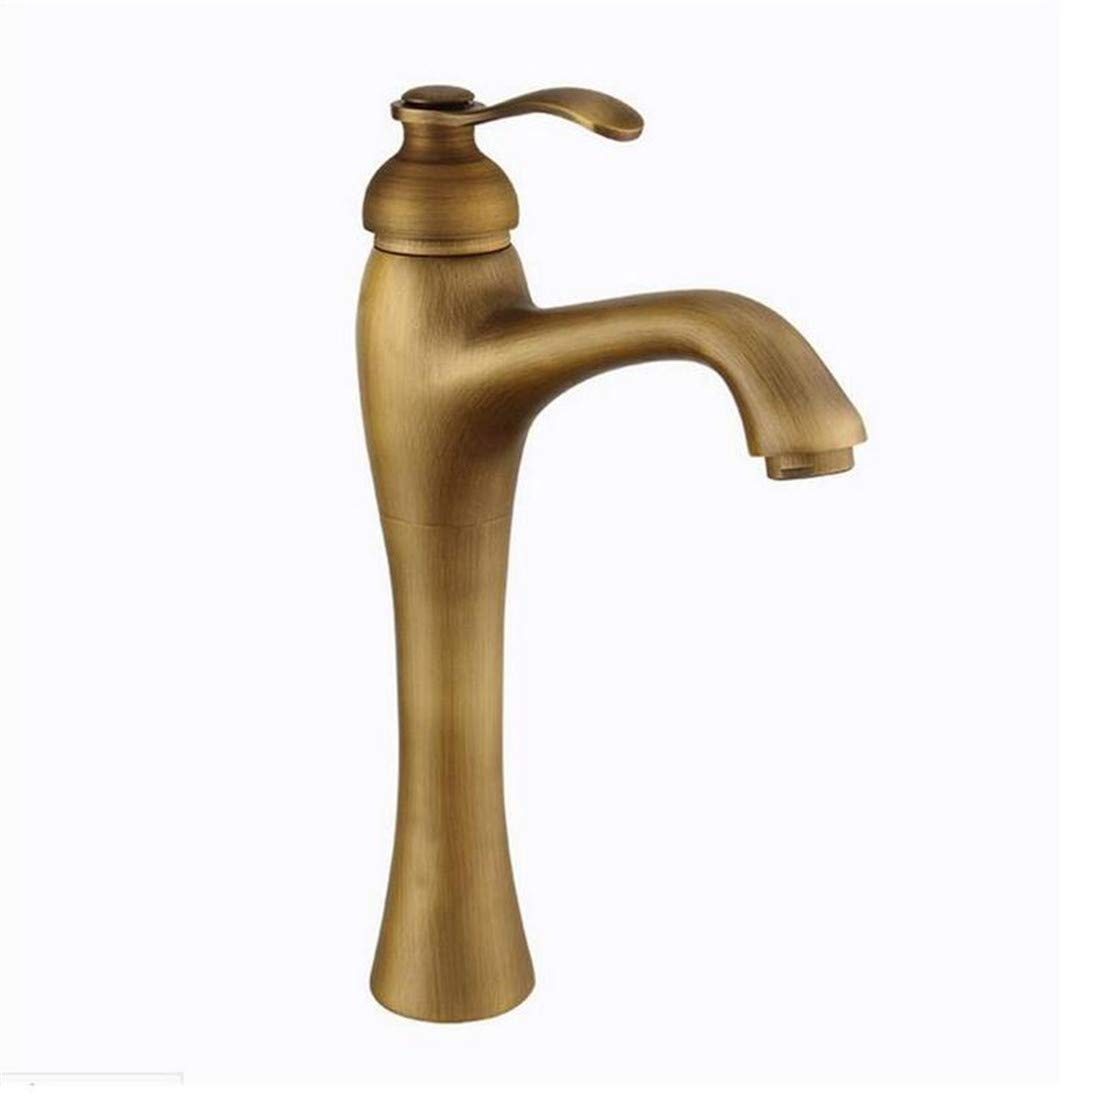 Retro Hot and Cold Water Brass Kitchen Antique Basin Faucet Hot and Cold Water Tap Bathroom Sink Faucets